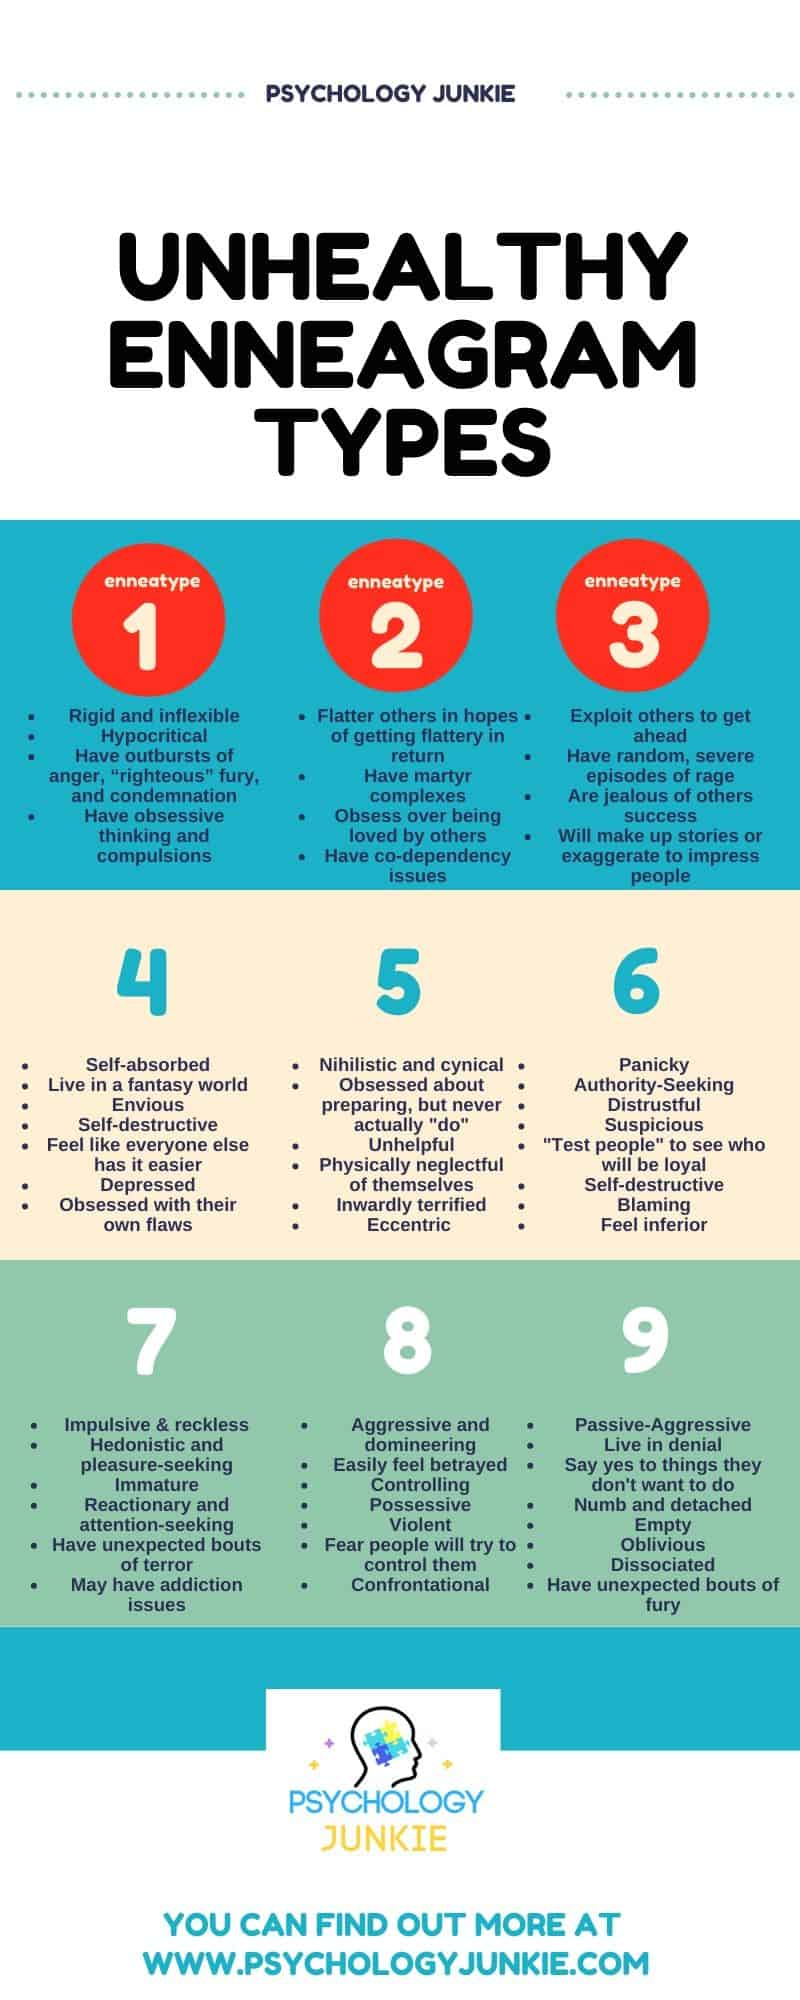 A look at the unhealthy versions of every enneagram type!